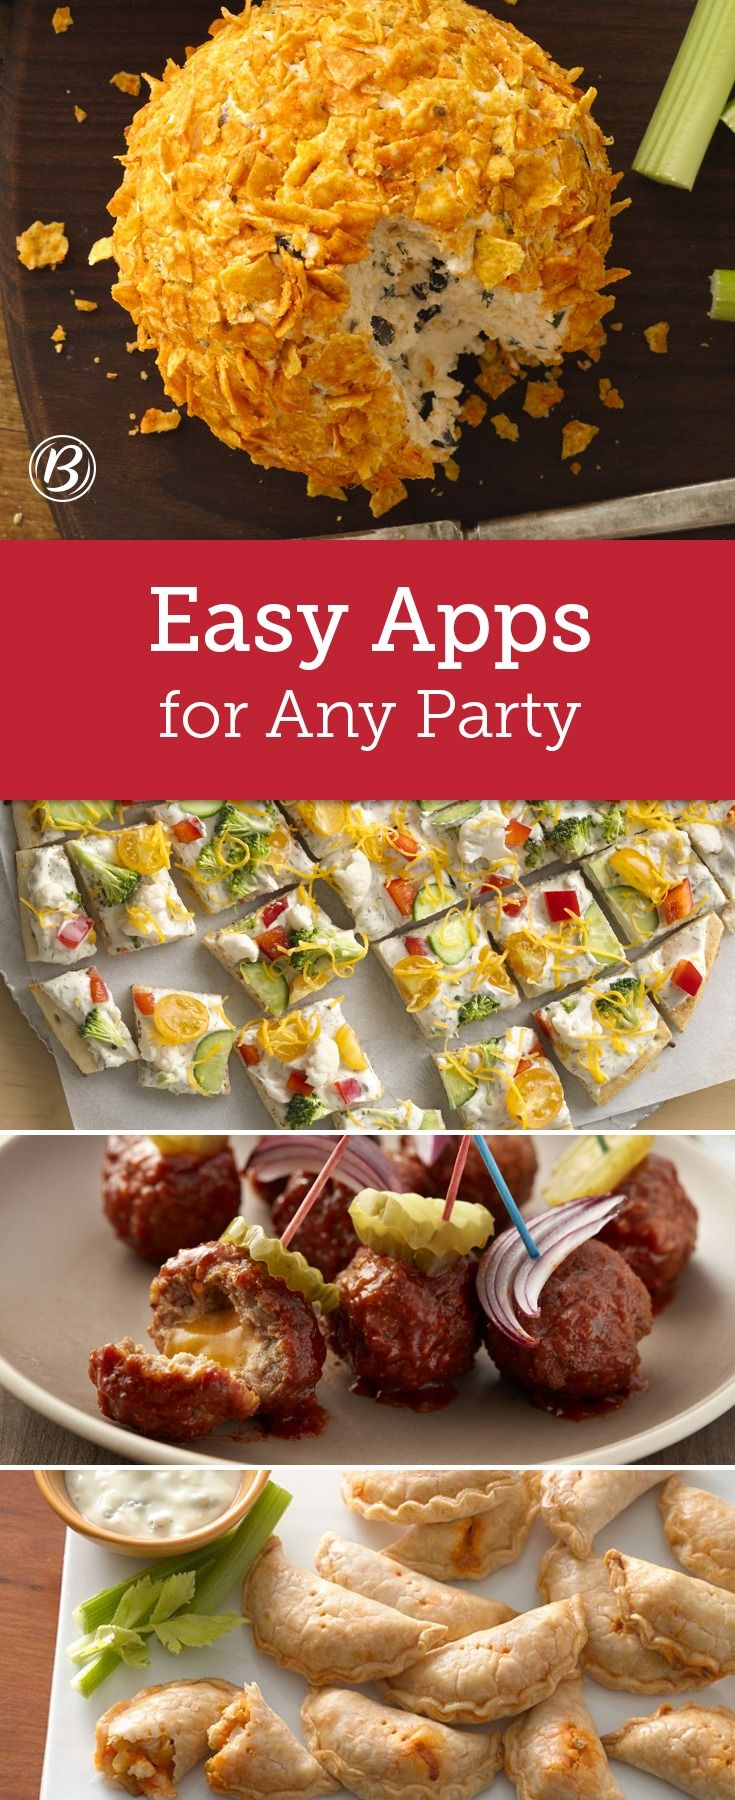 Parties are supposed to be fun, not stressful, and they really can be with these tasty recipes that you can make ahead of time, with the slow cooker or whip up at the last minute.